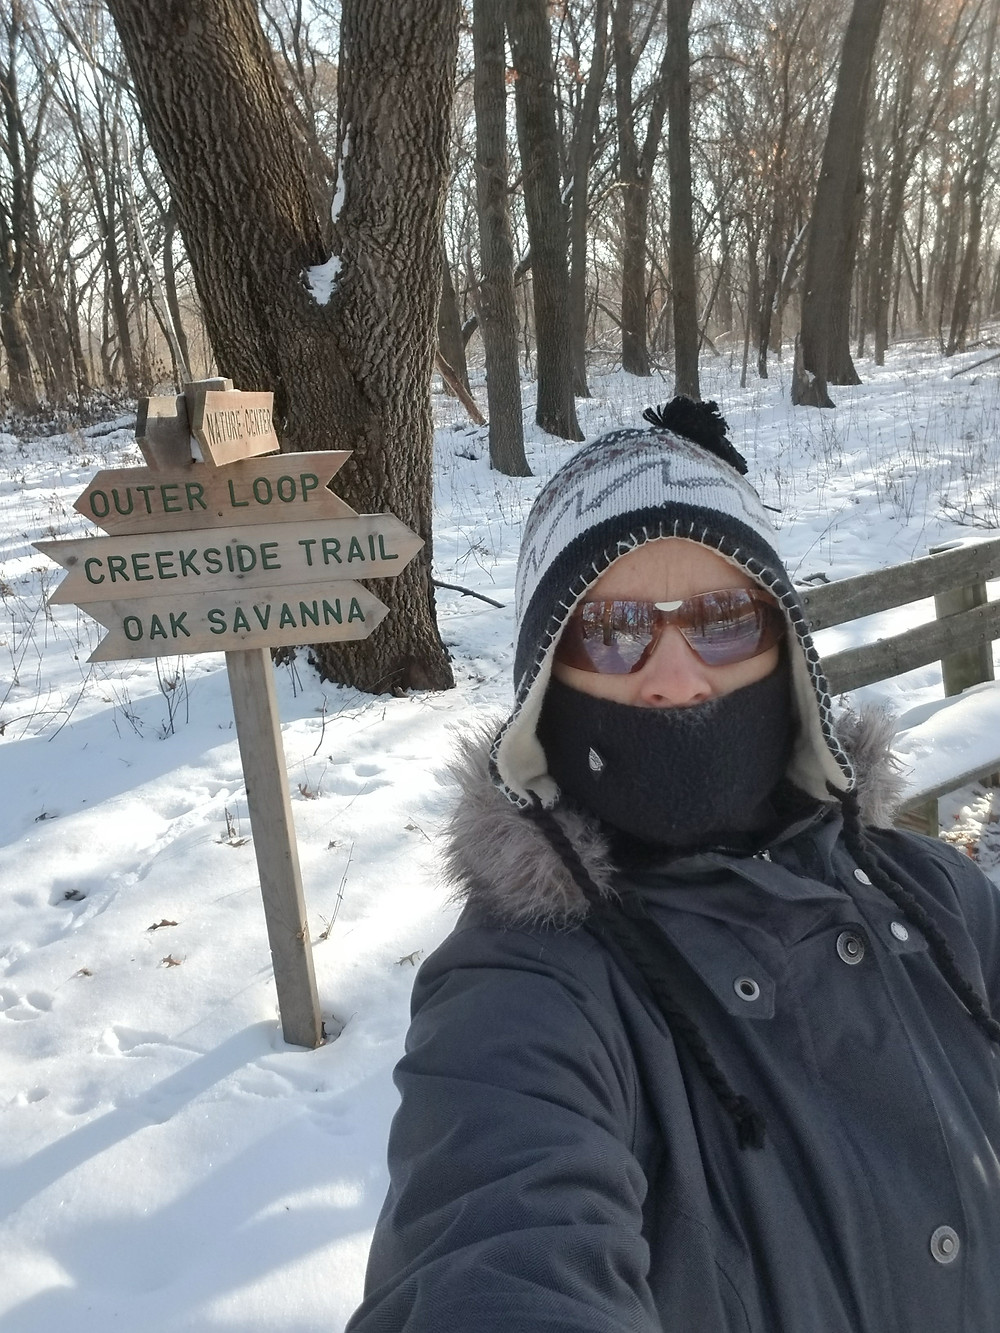 dress for cold weather, winter trails, hiking in winter, trail tips